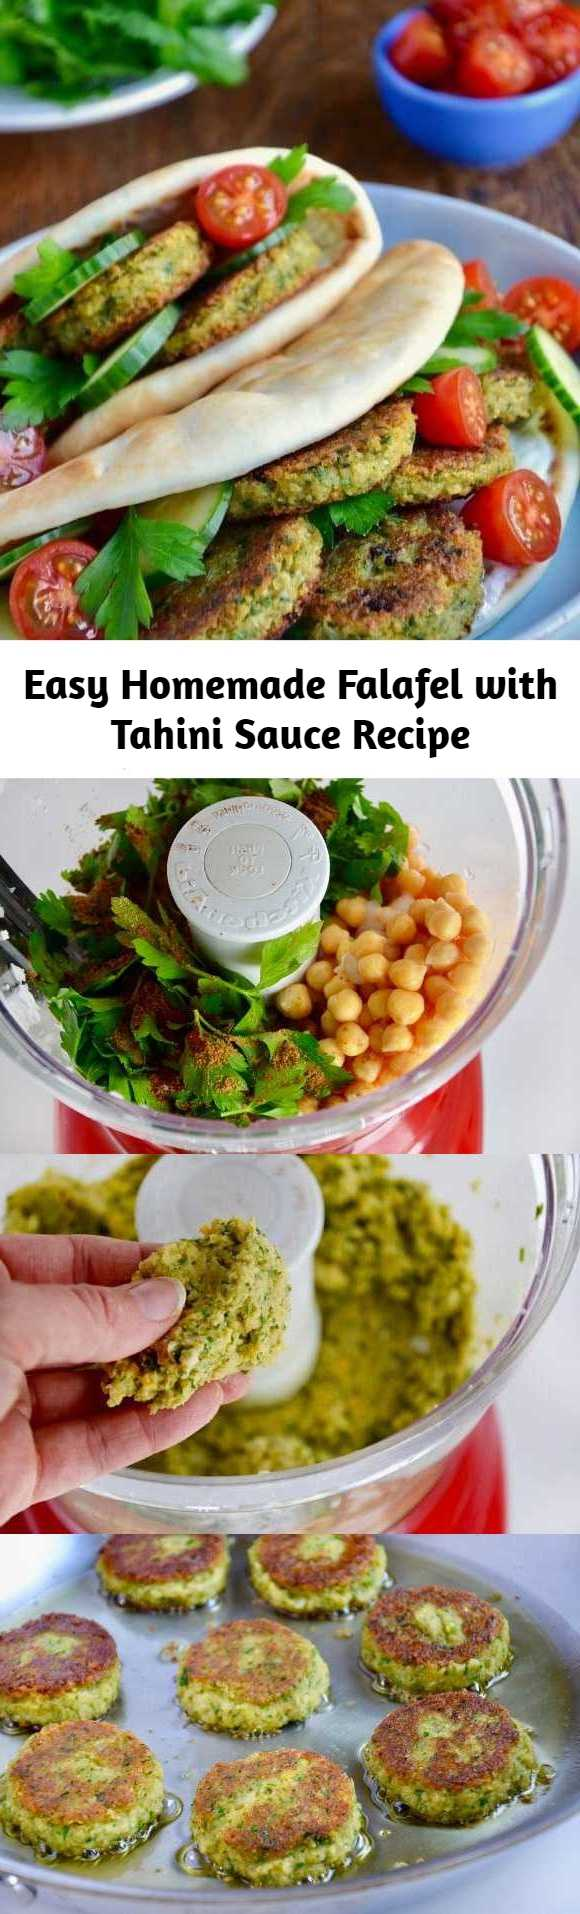 Easy Homemade Falafel with Tahini Sauce Recipe - A restaurant favorite gets a DIY makeover with this top-rated recipe for easy Homemade Falafel with Tahini Sauce.